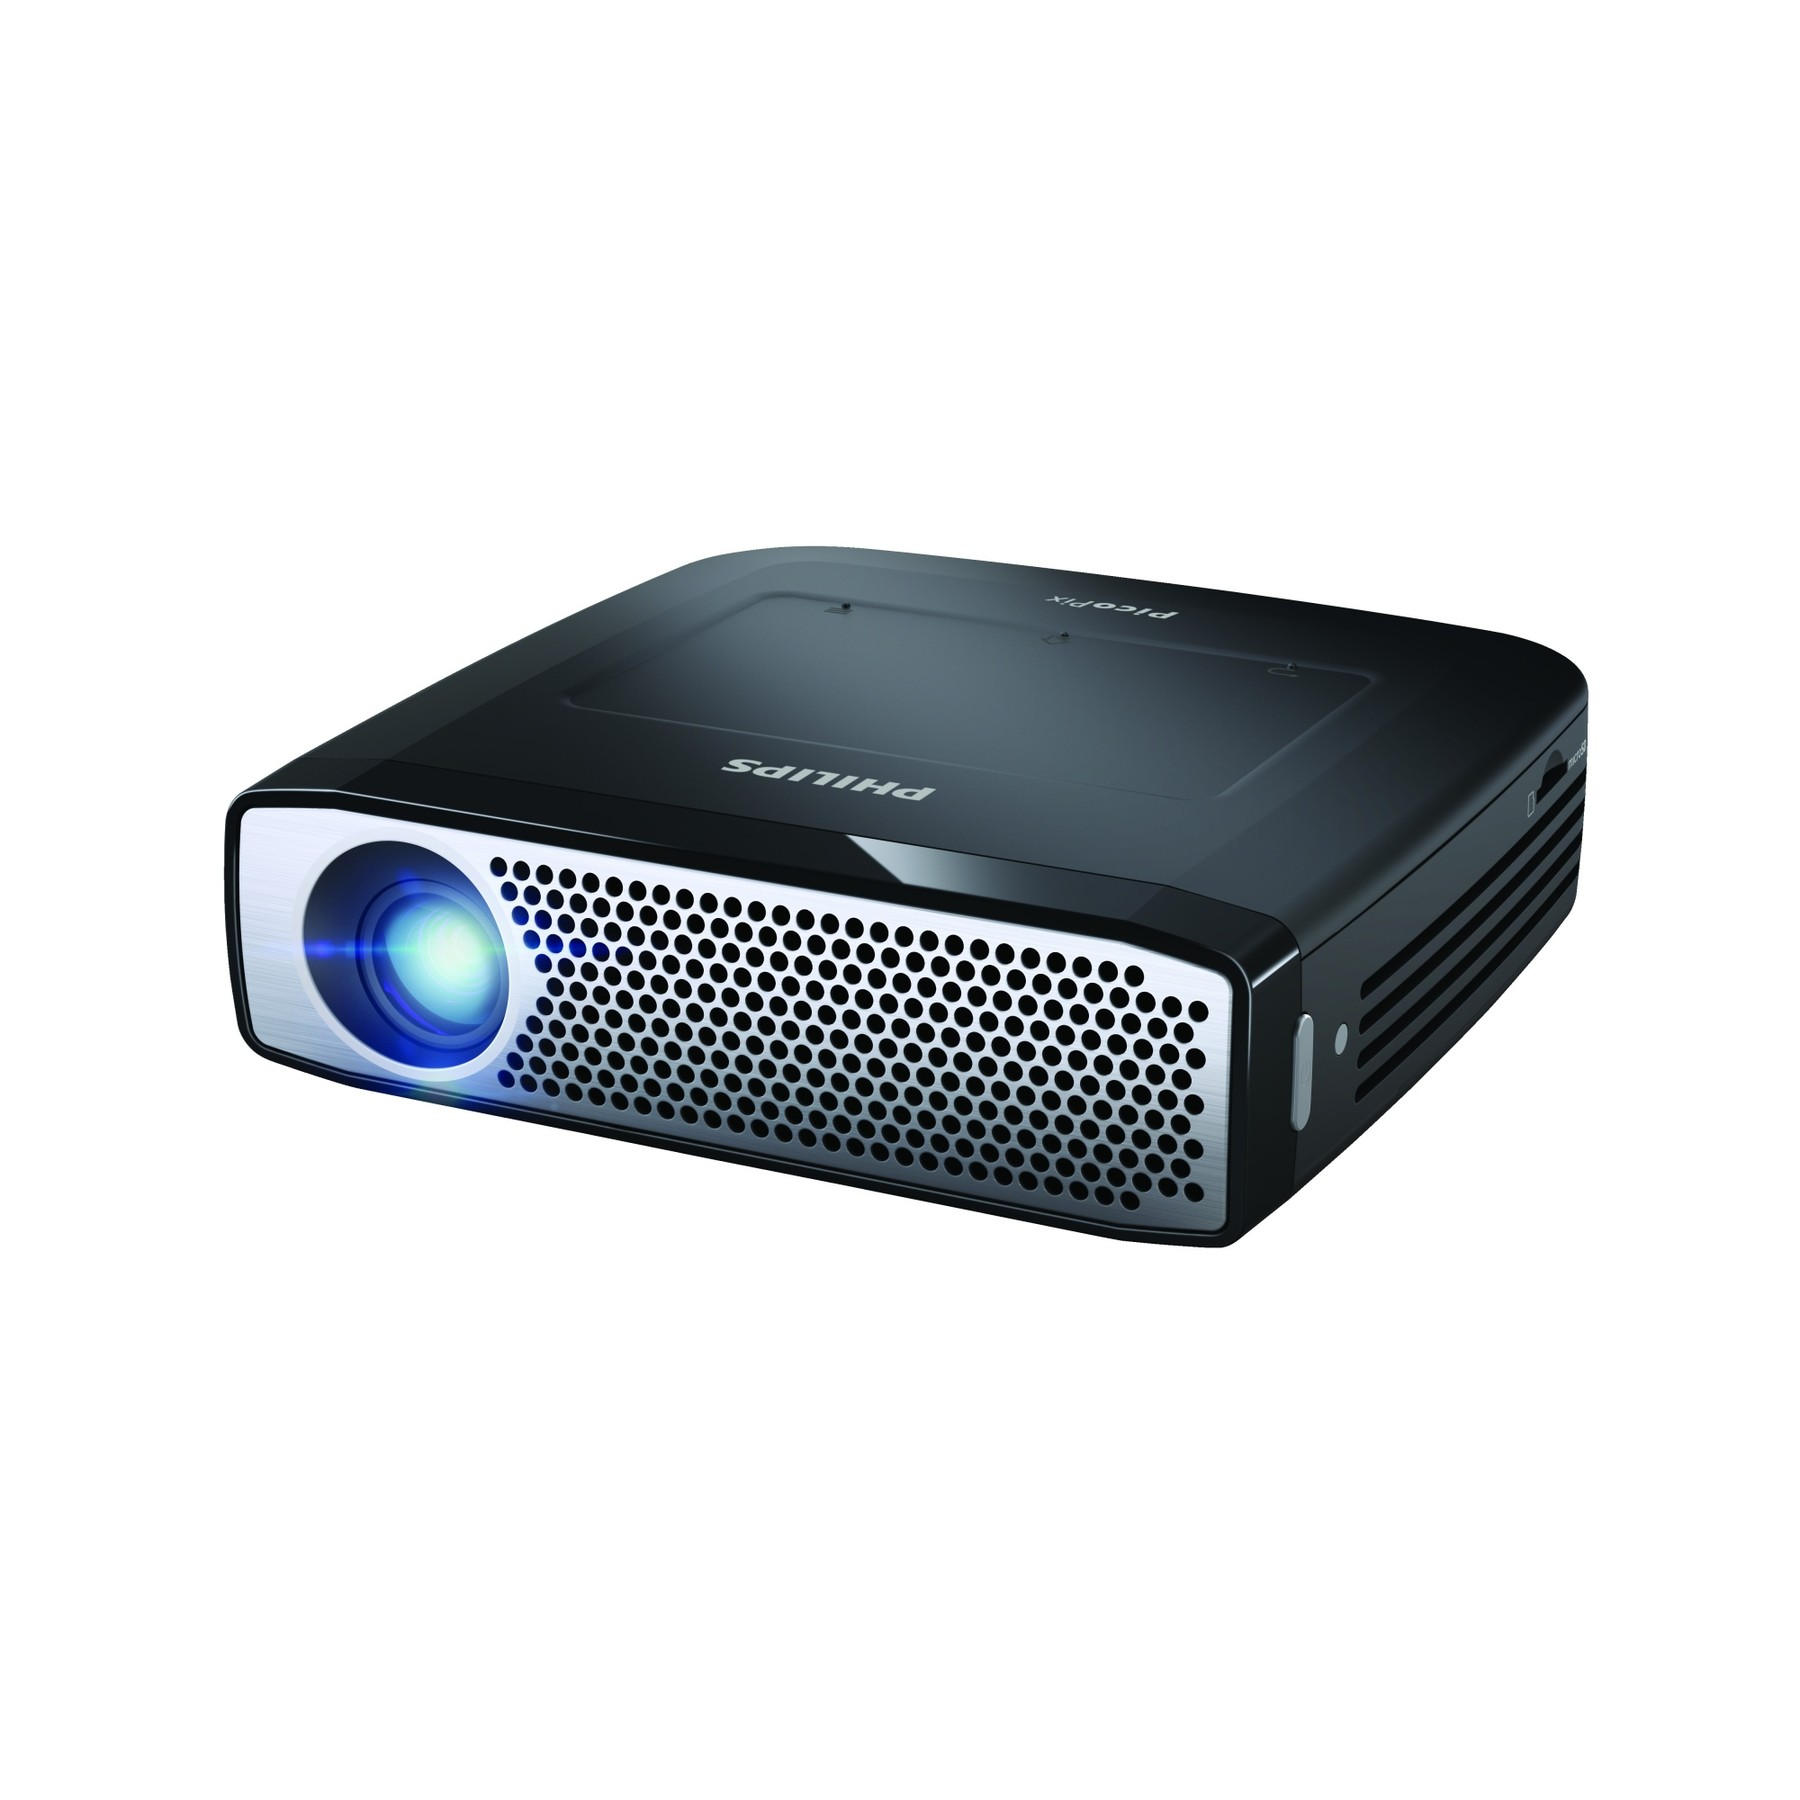 Philips picopix ppx 4935 led 1280x720 pocket projector for Latest pocket projector